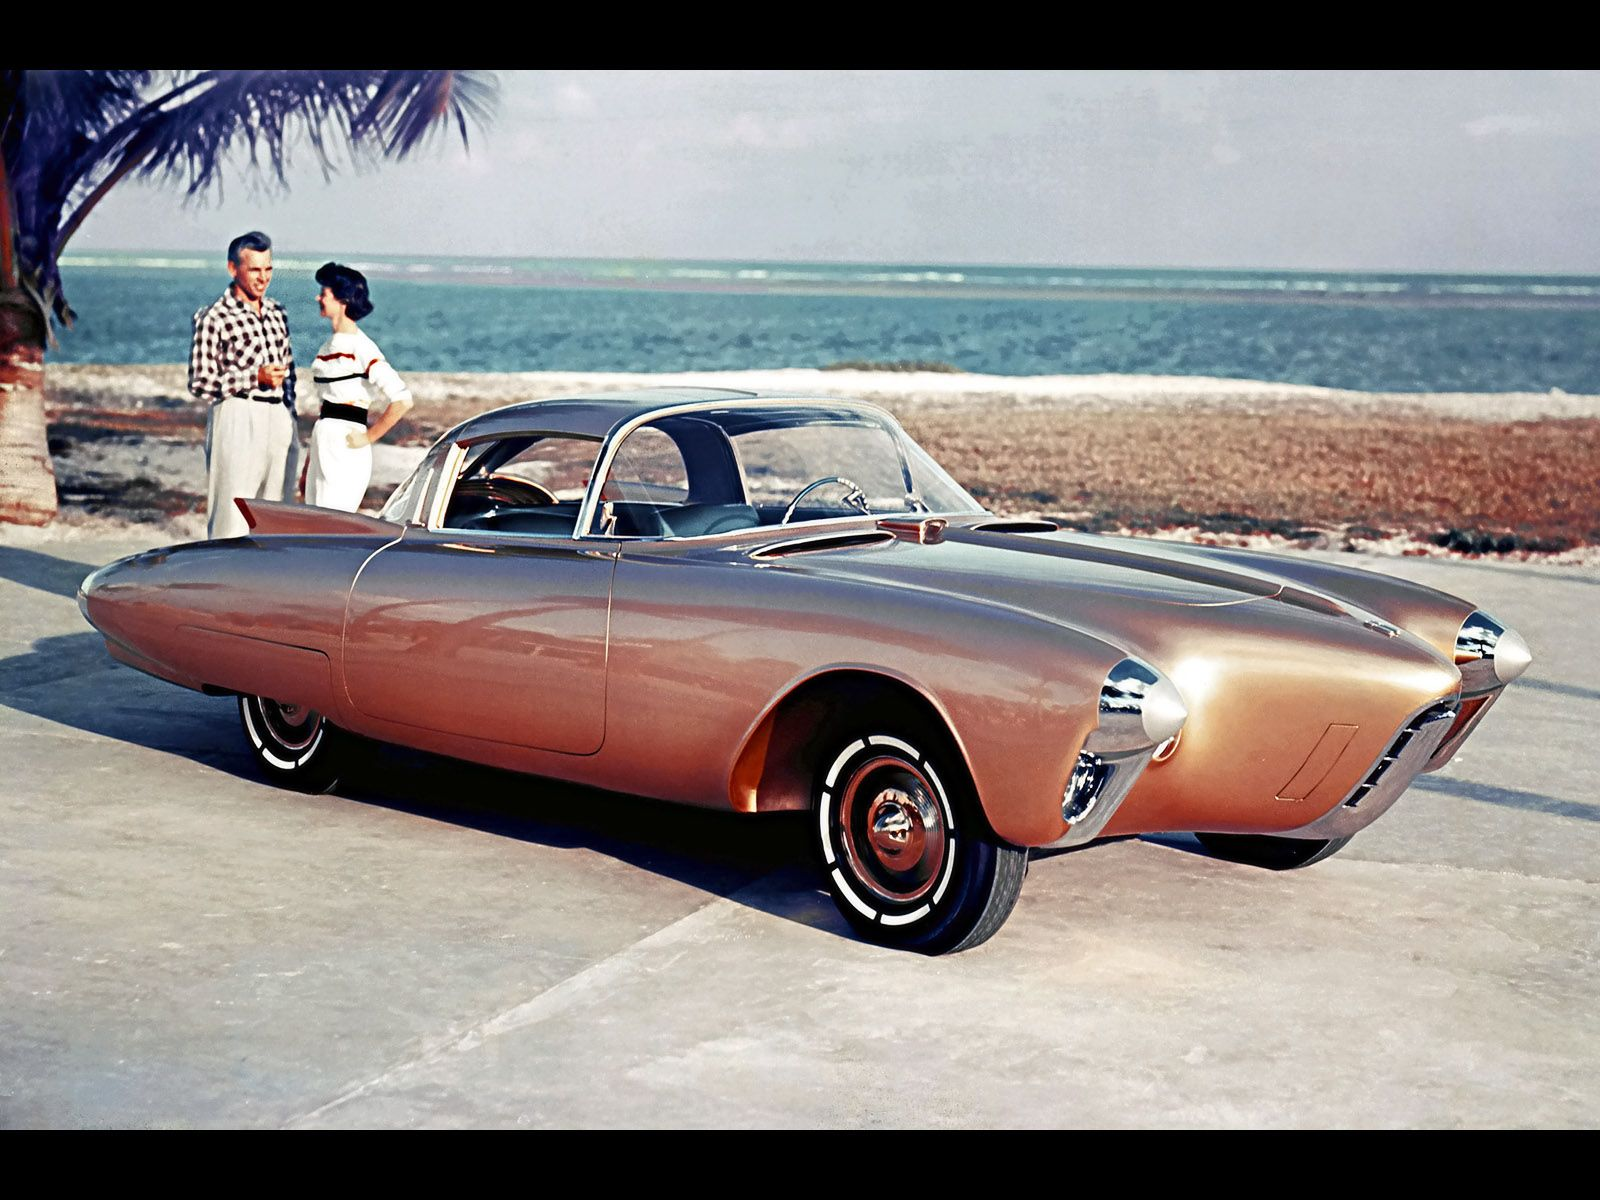 1956 chrysler boano auto shows car and driver - 1956 Oldsmobile 1956 Oldsmobile Golden Rocket Dream Car 1600x1200 Wallpaper